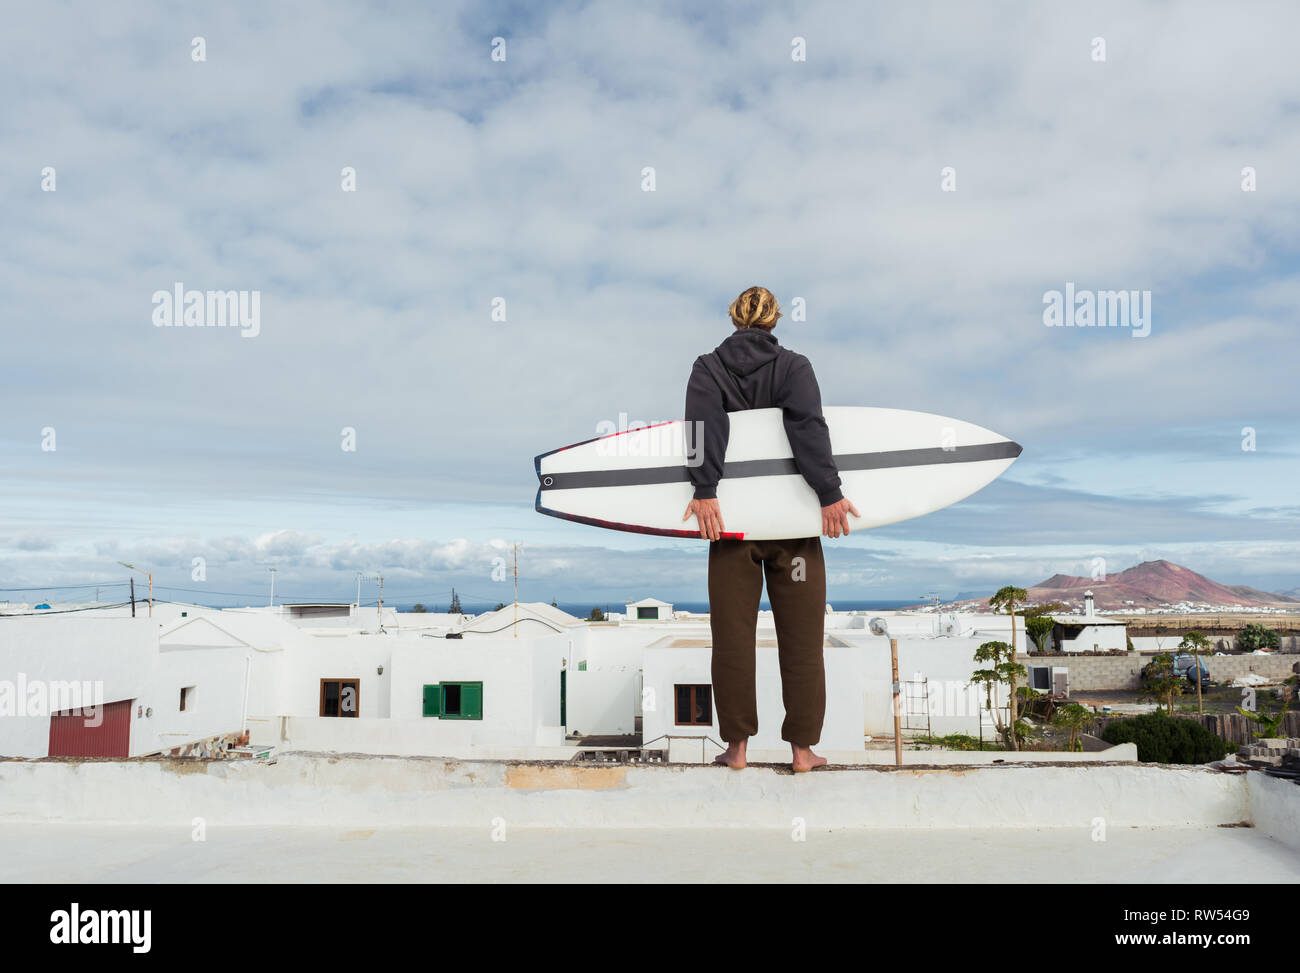 Man standing with surf board on roof of building and looking at mountain - Stock Image